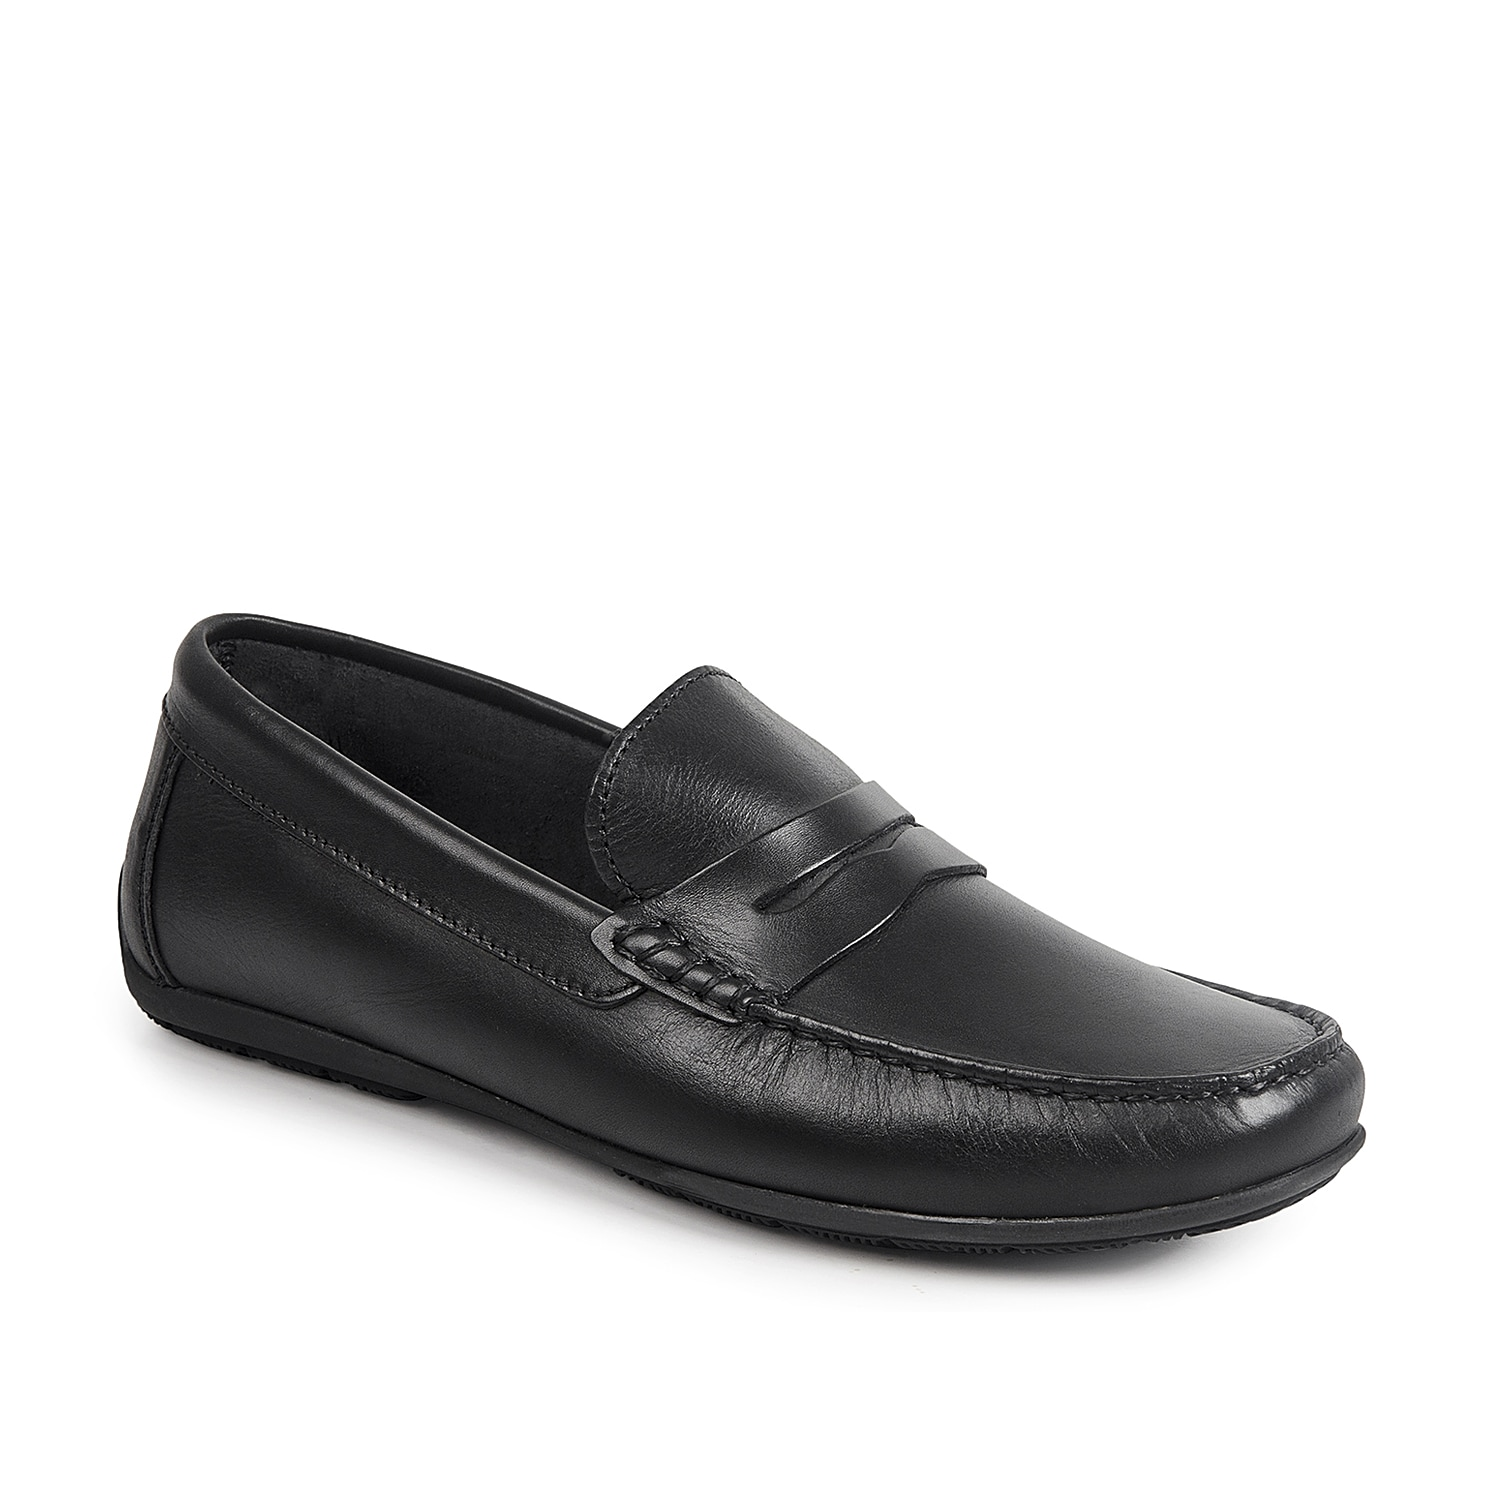 Top off your style game with the Paris loafer from Sandro Moscoloni. This slip-on features smooth leather upper and a penny keeper accent for a handsome touch to your outfit!